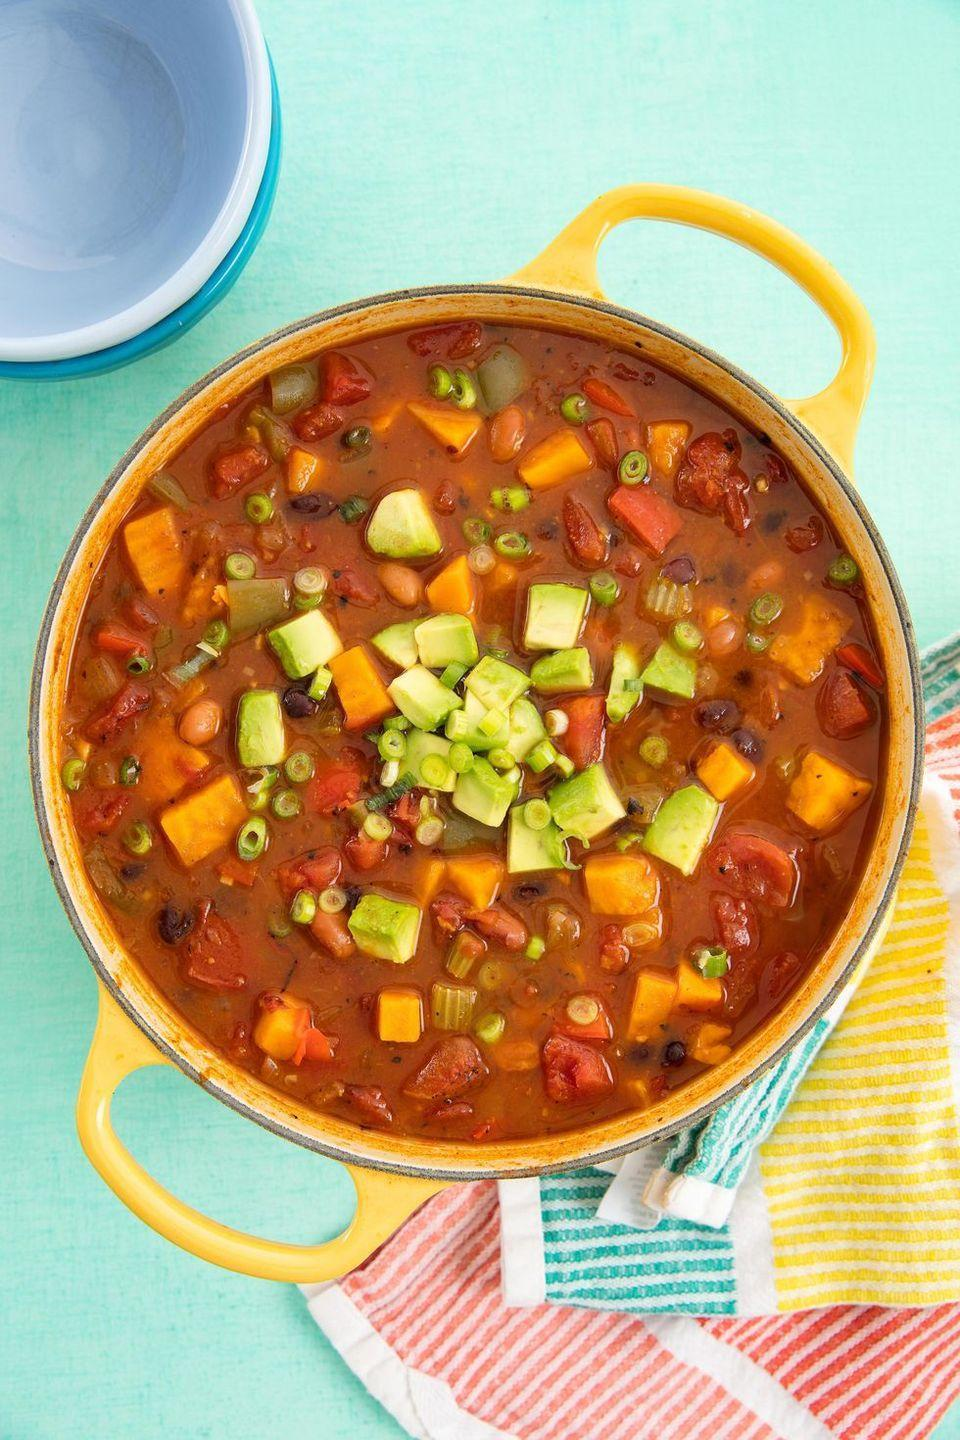 "<p>Serve this veggie-packed version at your next game day so that everyone — <a href=""https://www.goodhousekeeping.com/food-recipes/healthy/g807/vegan-recipes/"" rel=""nofollow noopener"" target=""_blank"" data-ylk=""slk:vegans"" class=""link rapid-noclick-resp"">vegans</a> and non-vegans alike — can get their grub on. </p><p><a class=""link rapid-noclick-resp"" href=""https://www.amazon.com/AmazonBasics-Enameled-Cast-Iron-Dutch/dp/B073Q9WV8S/?tag=syn-yahoo-20&ascsubtag=%5Bartid%7C10055.g.920%5Bsrc%7Cyahoo-us"" rel=""nofollow noopener"" target=""_blank"" data-ylk=""slk:SHOP DUTCH OVENS"">SHOP DUTCH OVENS</a></p><p><em><a href=""https://www.delish.com/cooking/recipe-ideas/recipes/a58454/easy-vegan-chili-recipe/"" rel=""nofollow noopener"" target=""_blank"" data-ylk=""slk:Get the recipe from Delish »"" class=""link rapid-noclick-resp"">Get the recipe from Delish »</a></em></p>"